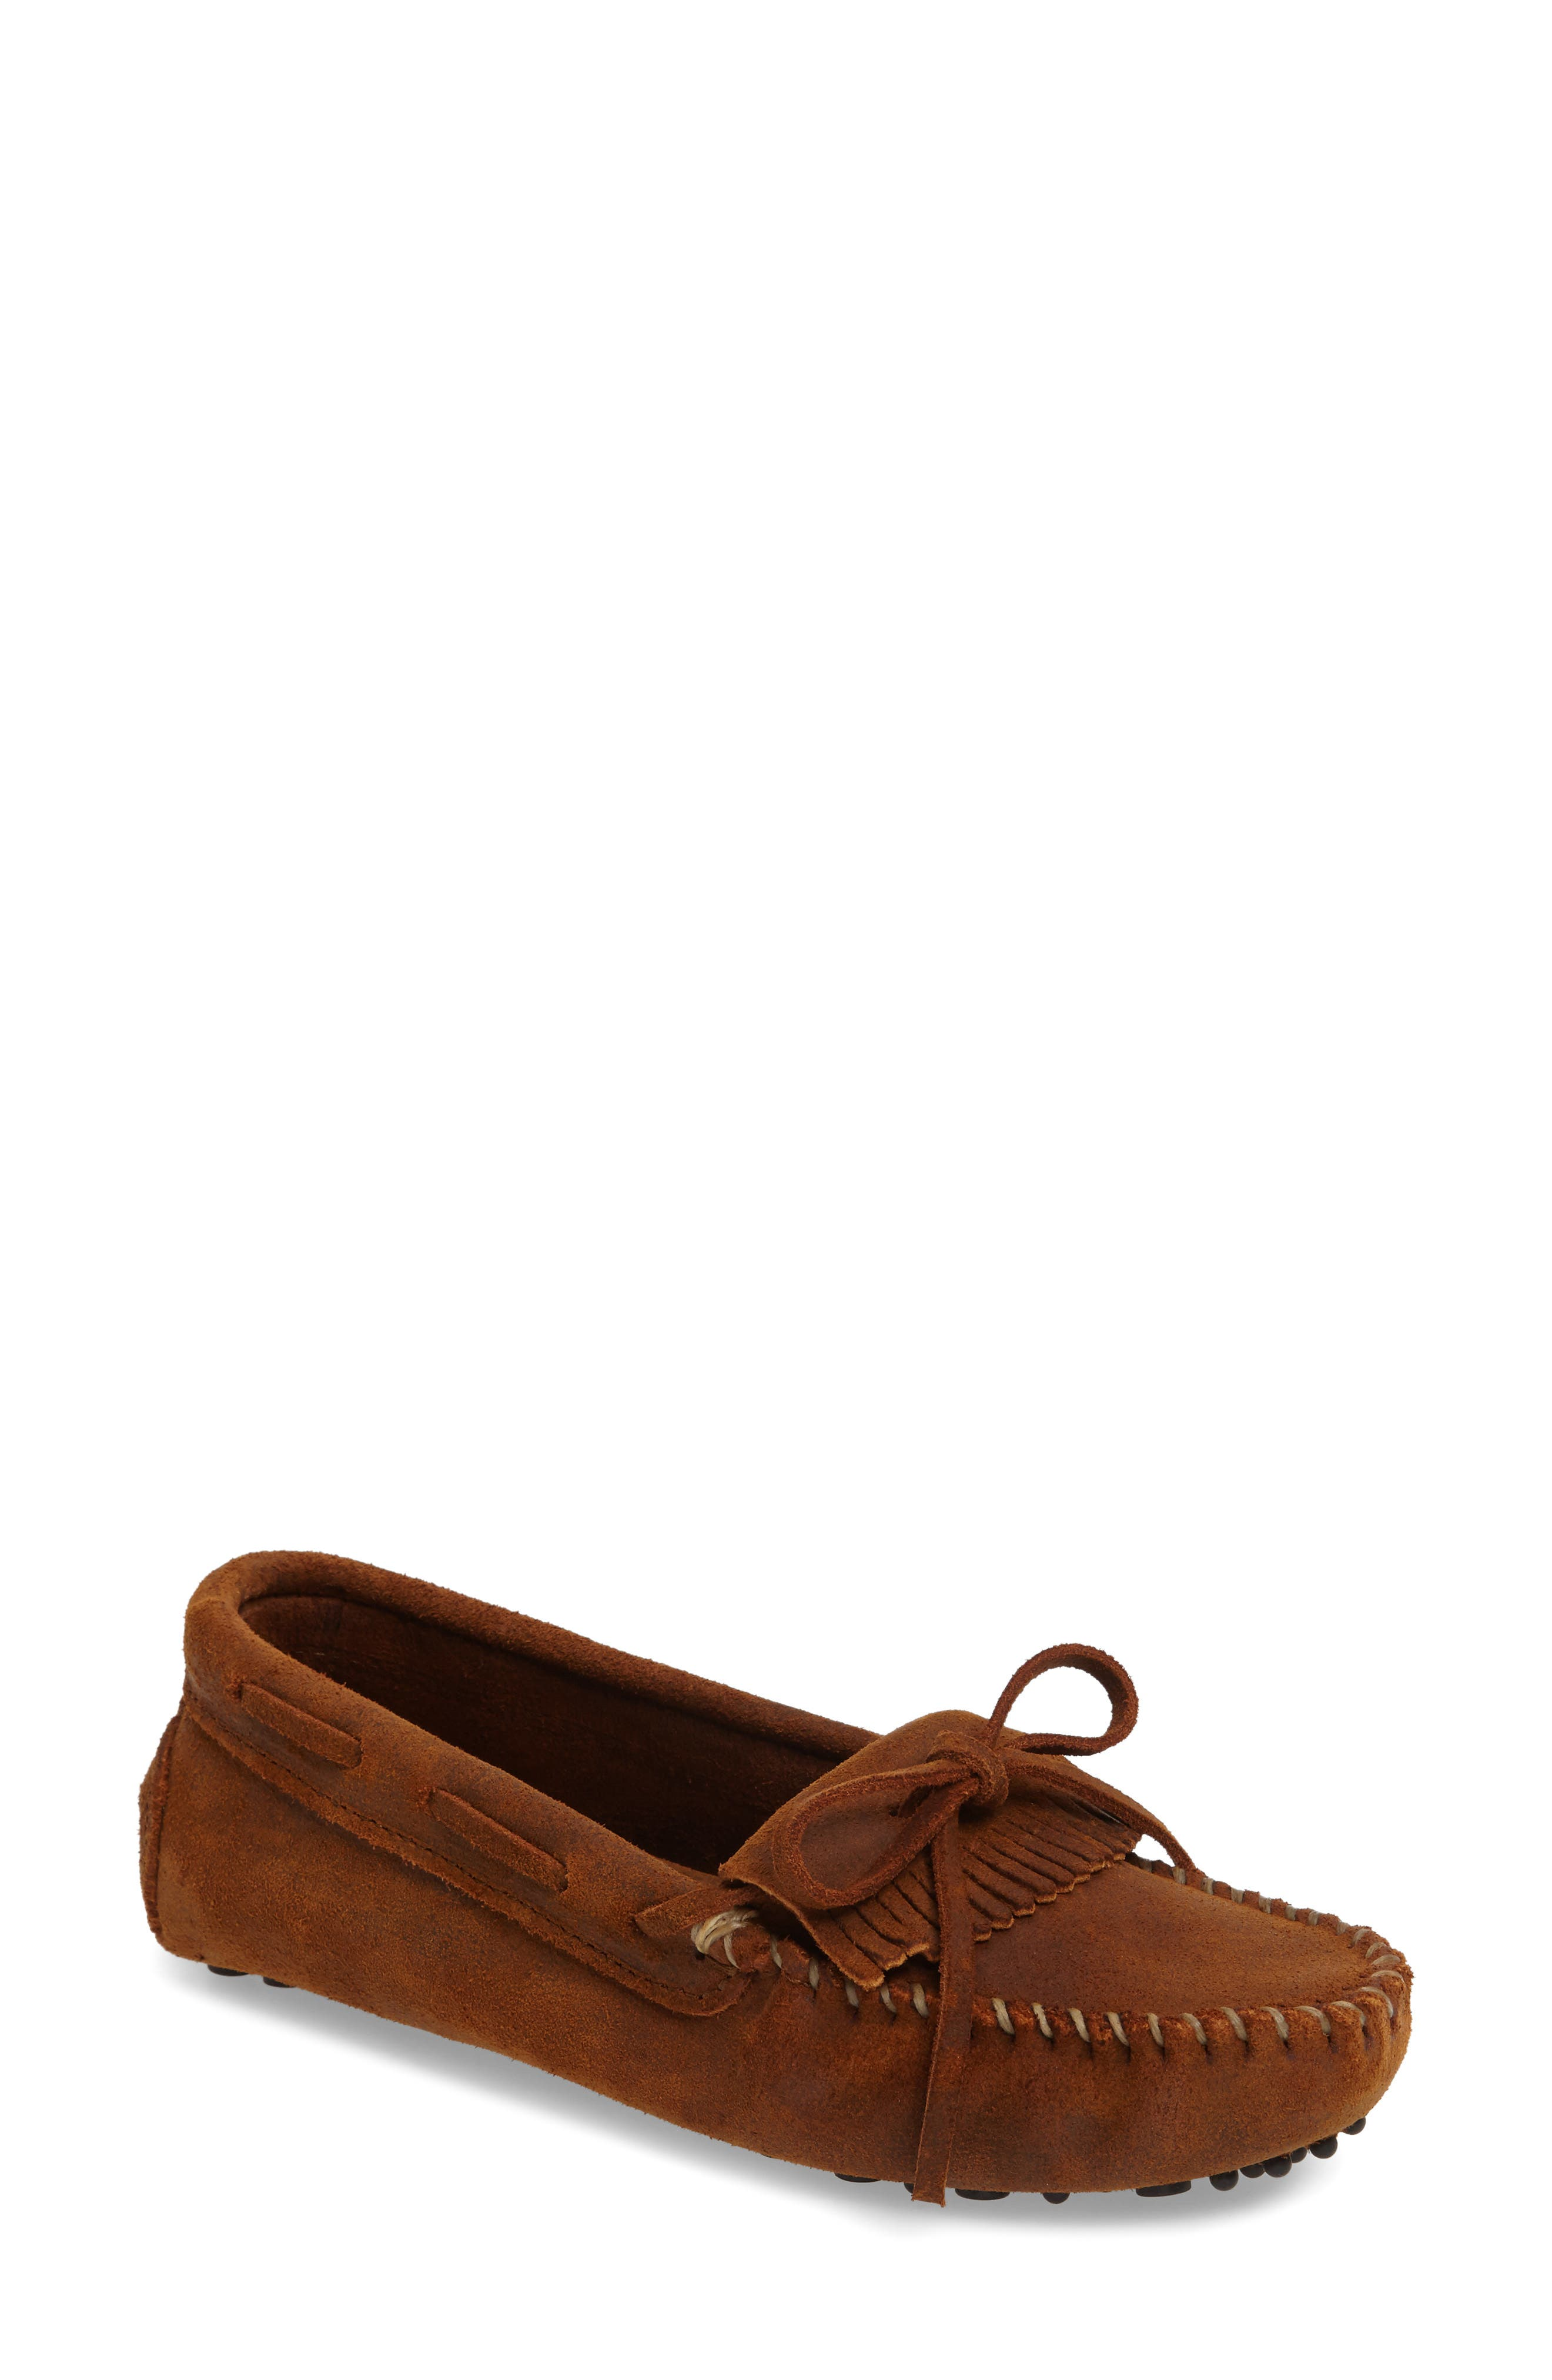 Kilty Driving Moccasin,                             Main thumbnail 1, color,                             BROWN RUFF